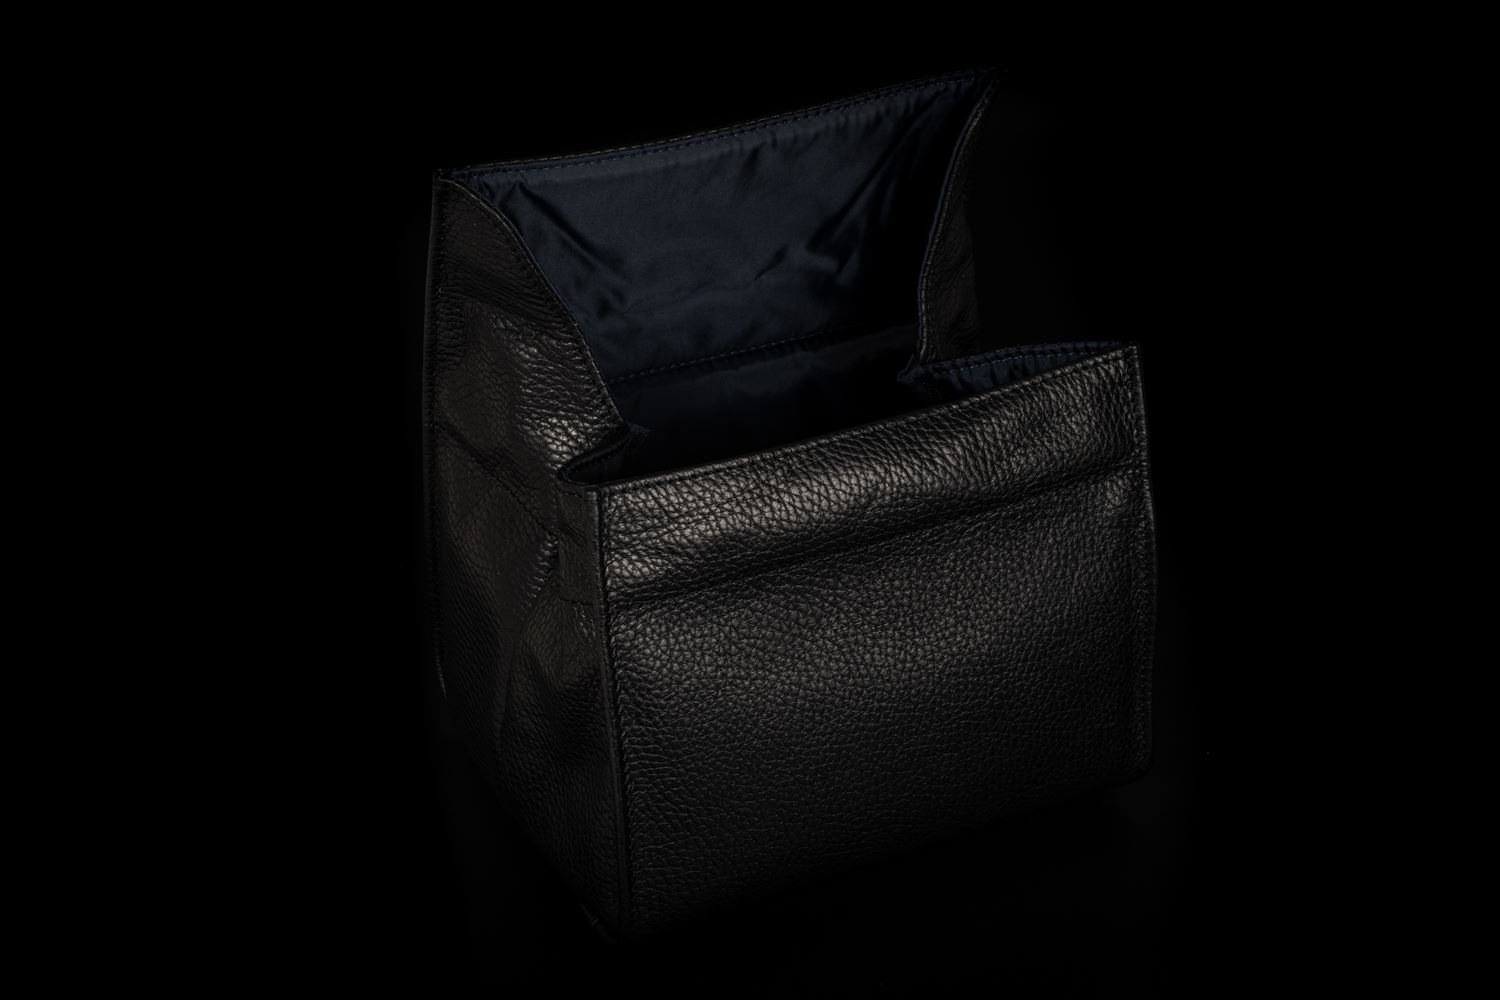 Picture of Artisan & Artist ACAM-78 Black Large Leather Pouch